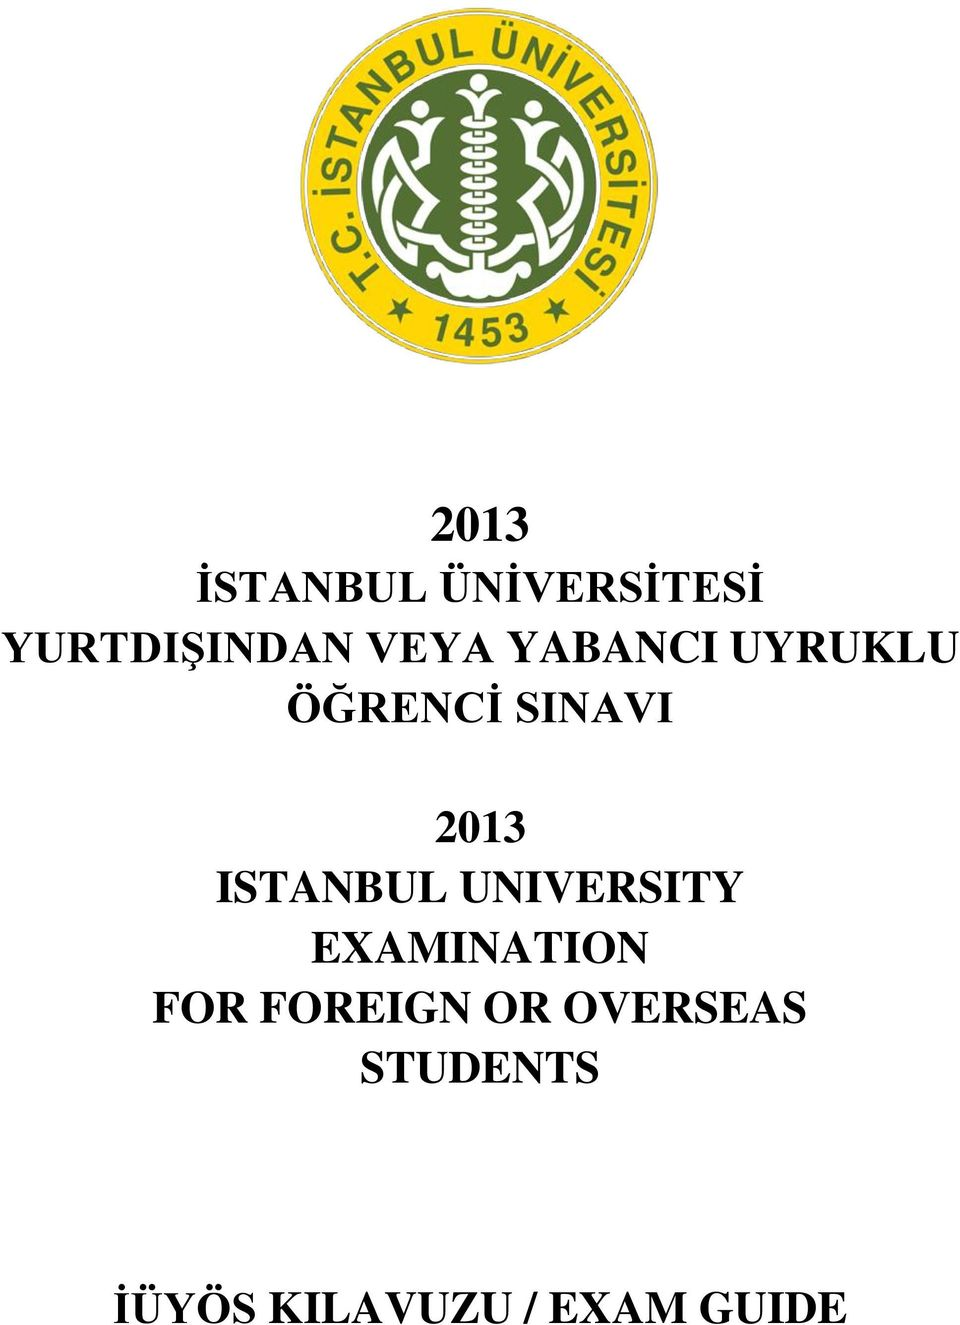 ISTANBUL UNIVERSITY EXAMINATION FOR FOREIGN